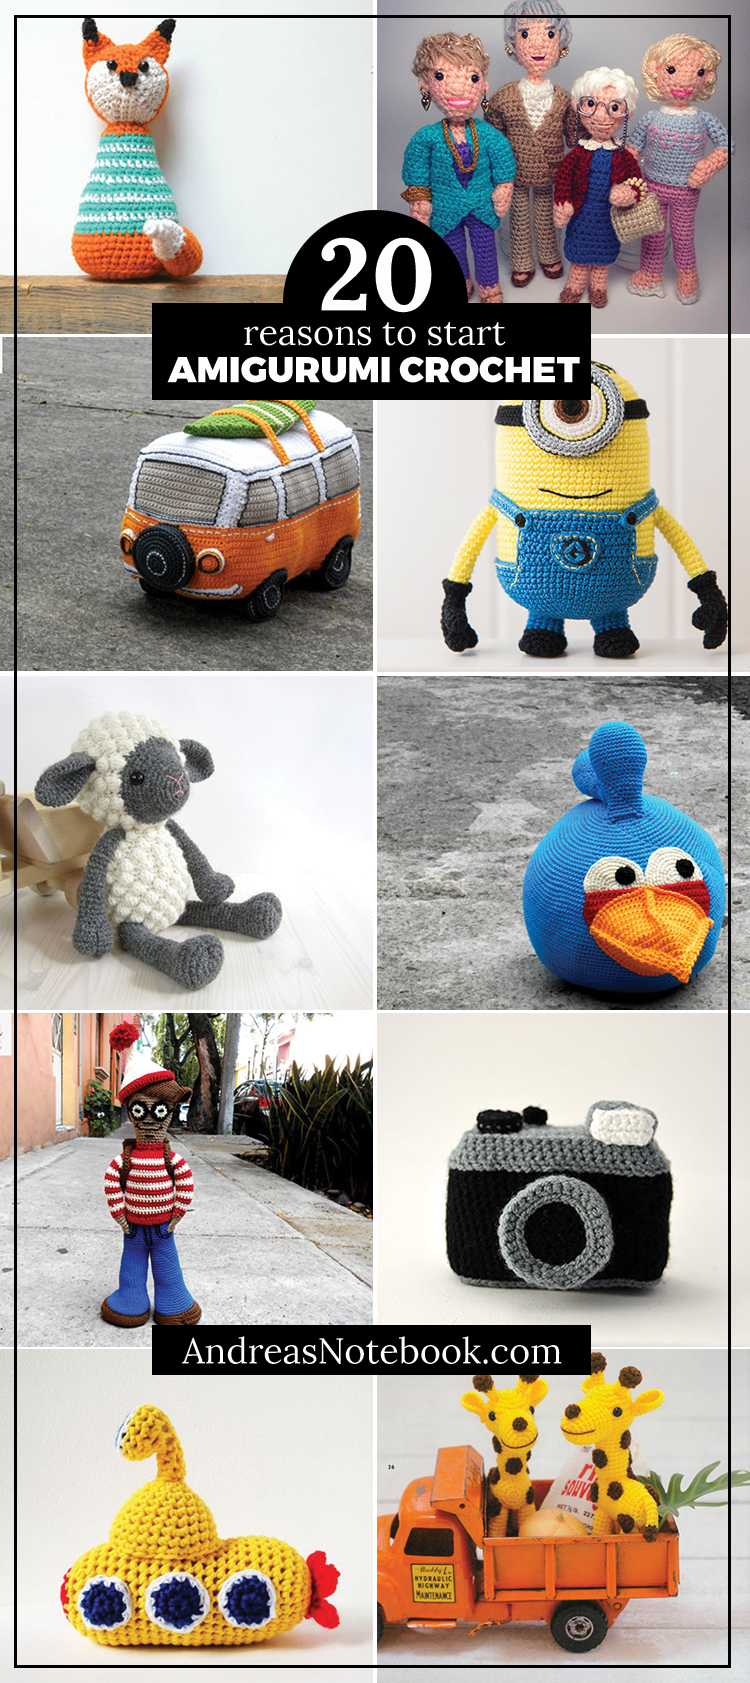 20 amigurumi crochet patterns you'll want